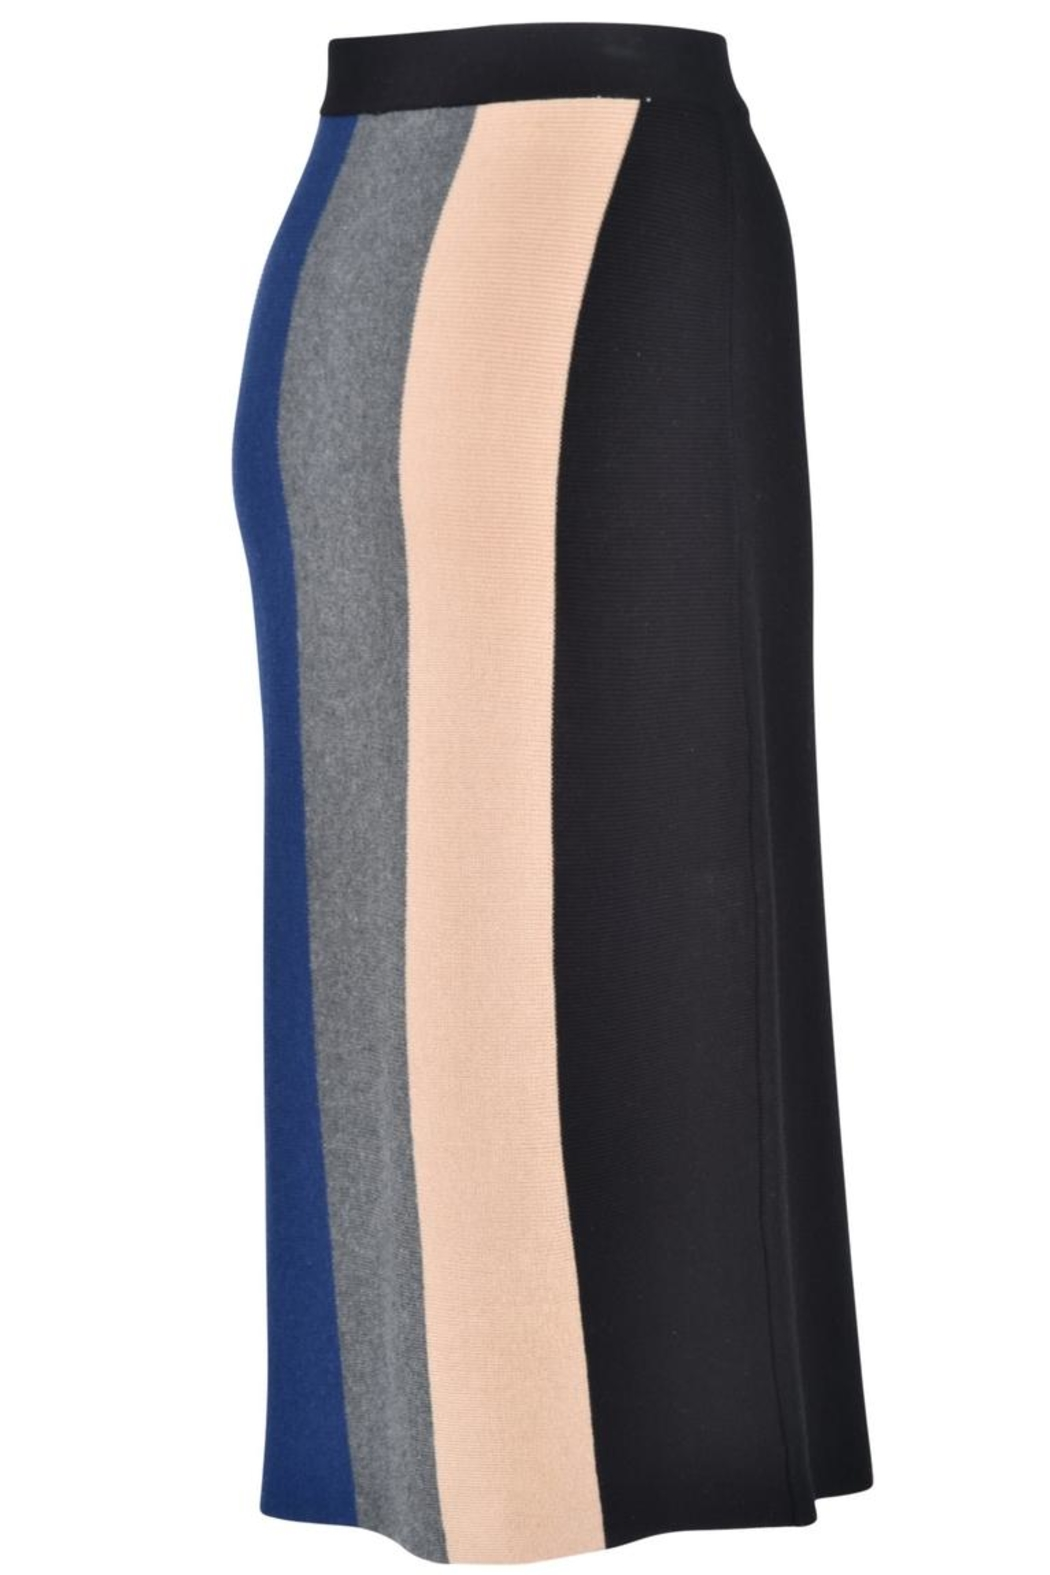 junee Banded Colored Skirt - Front Full Image